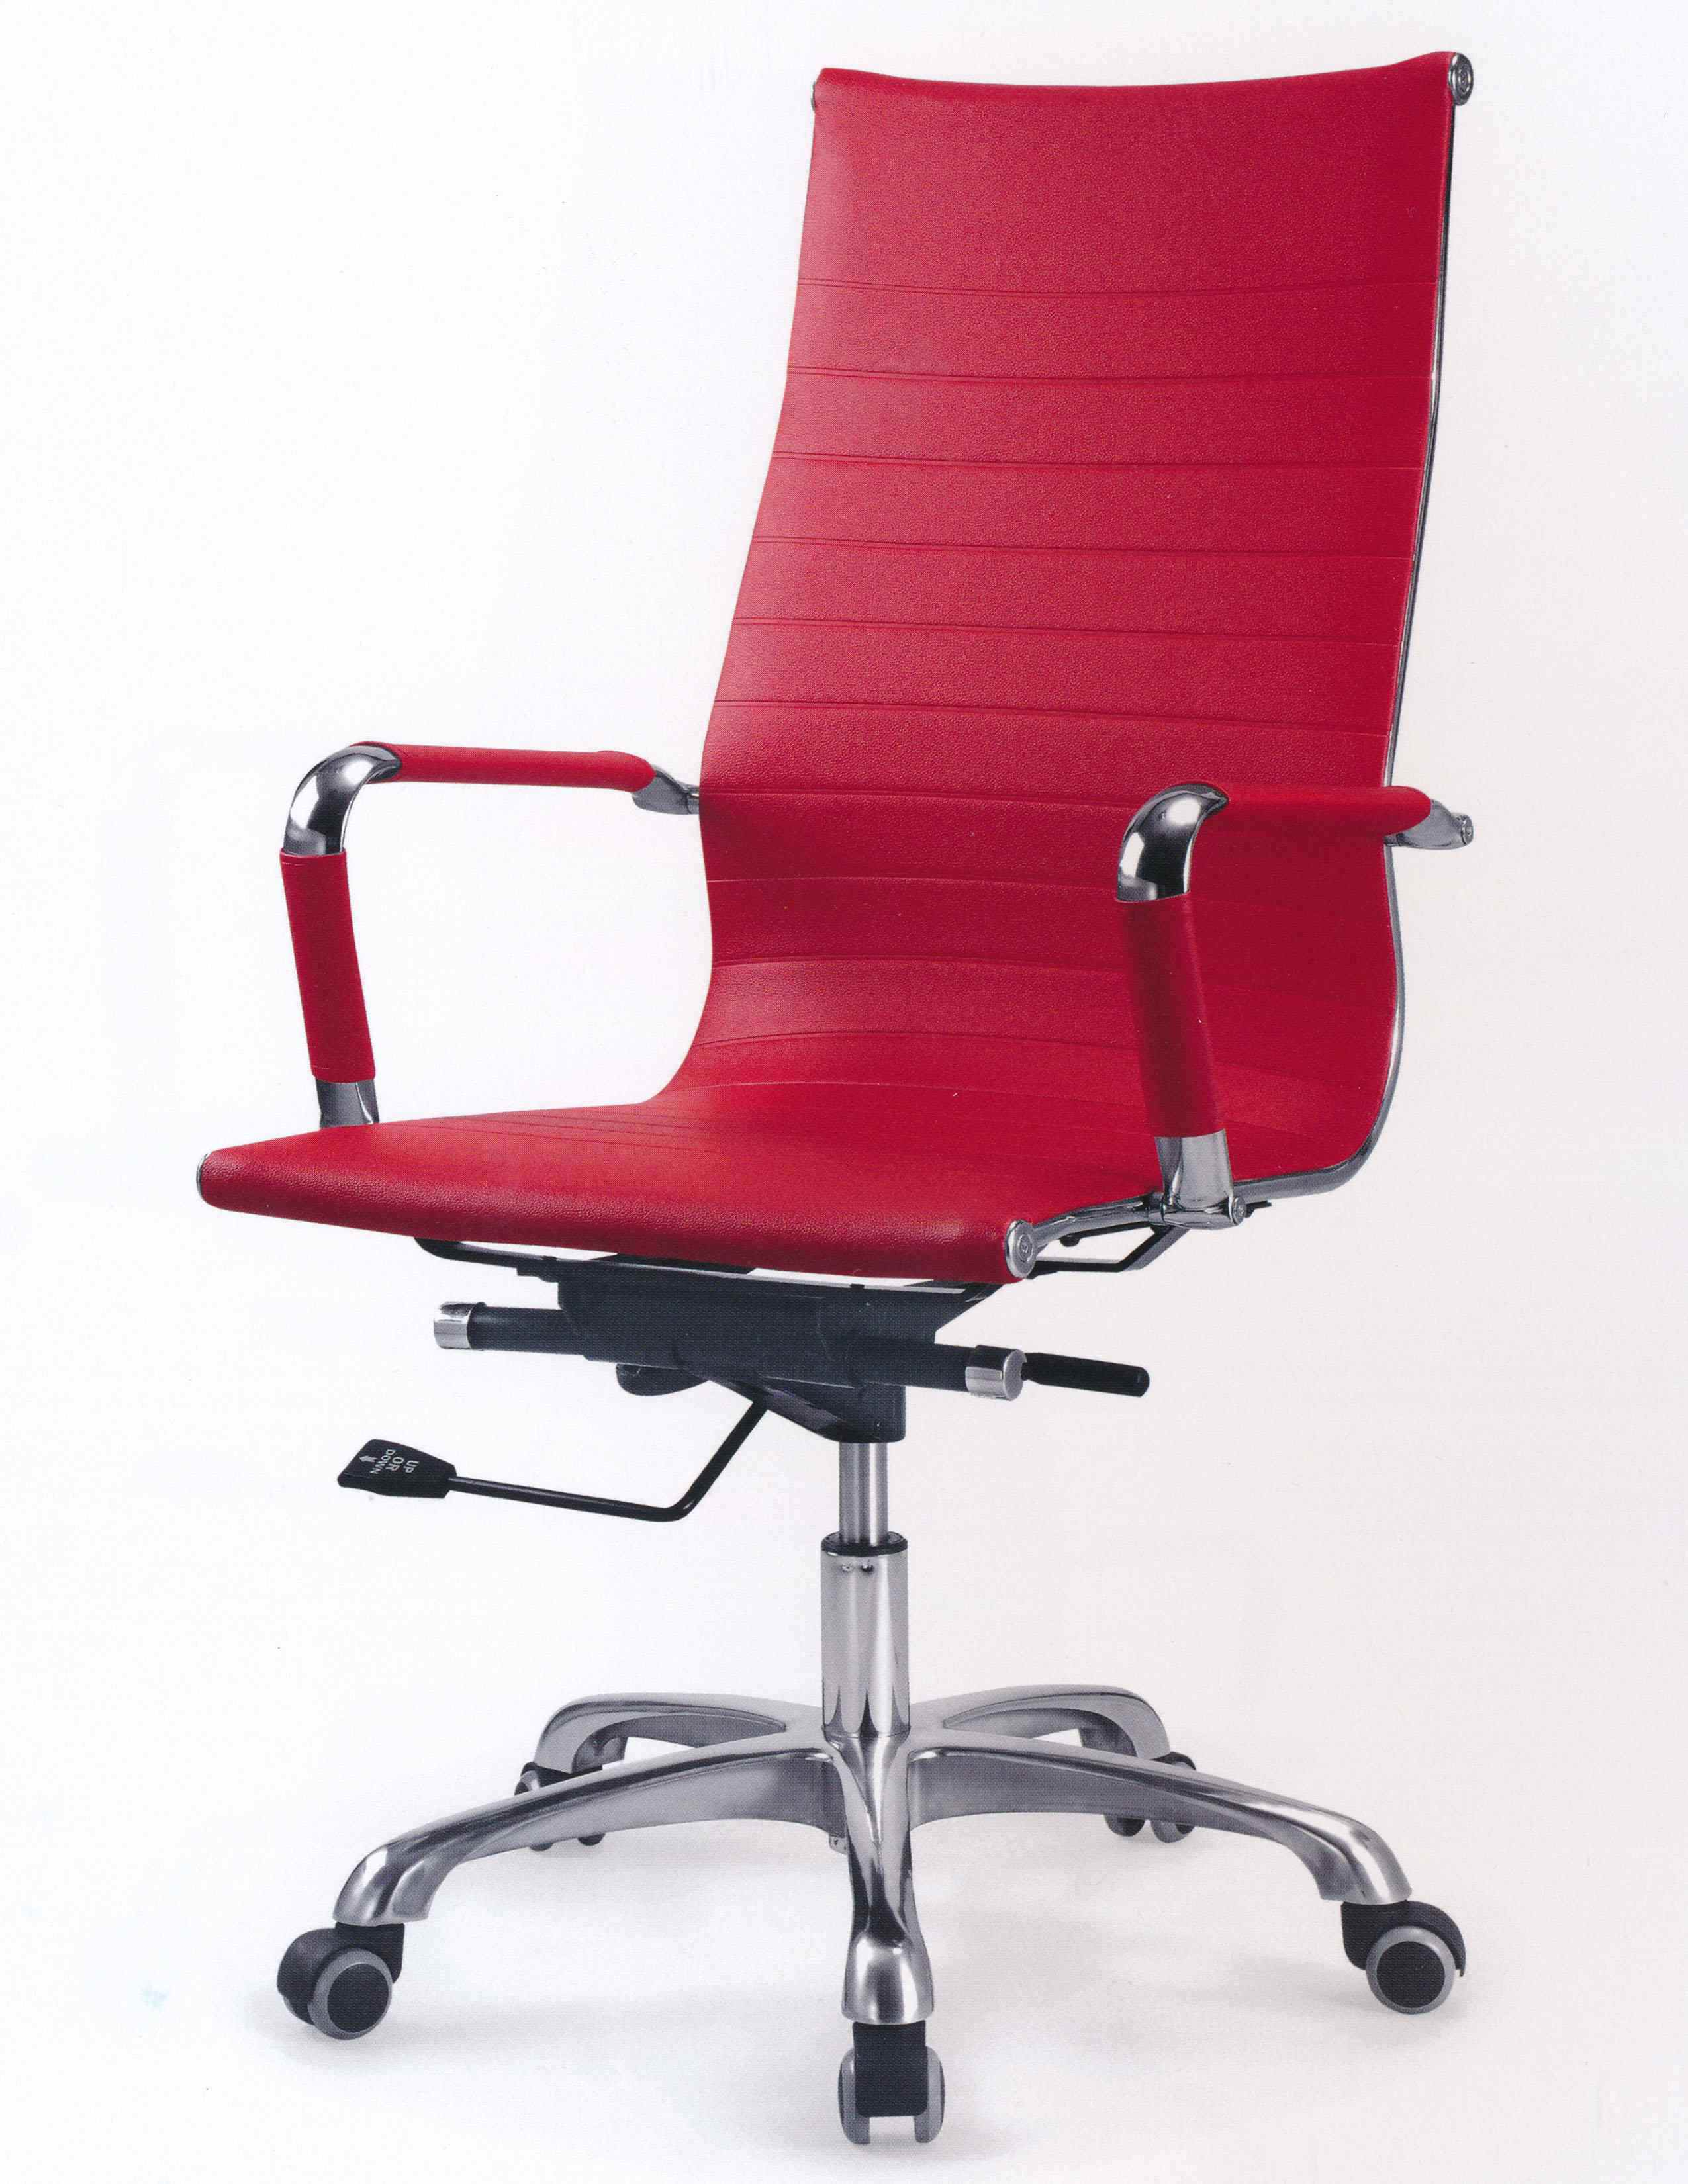 ZHPSOC-01H High Back Swivel Office Chair with PU Leather Surface